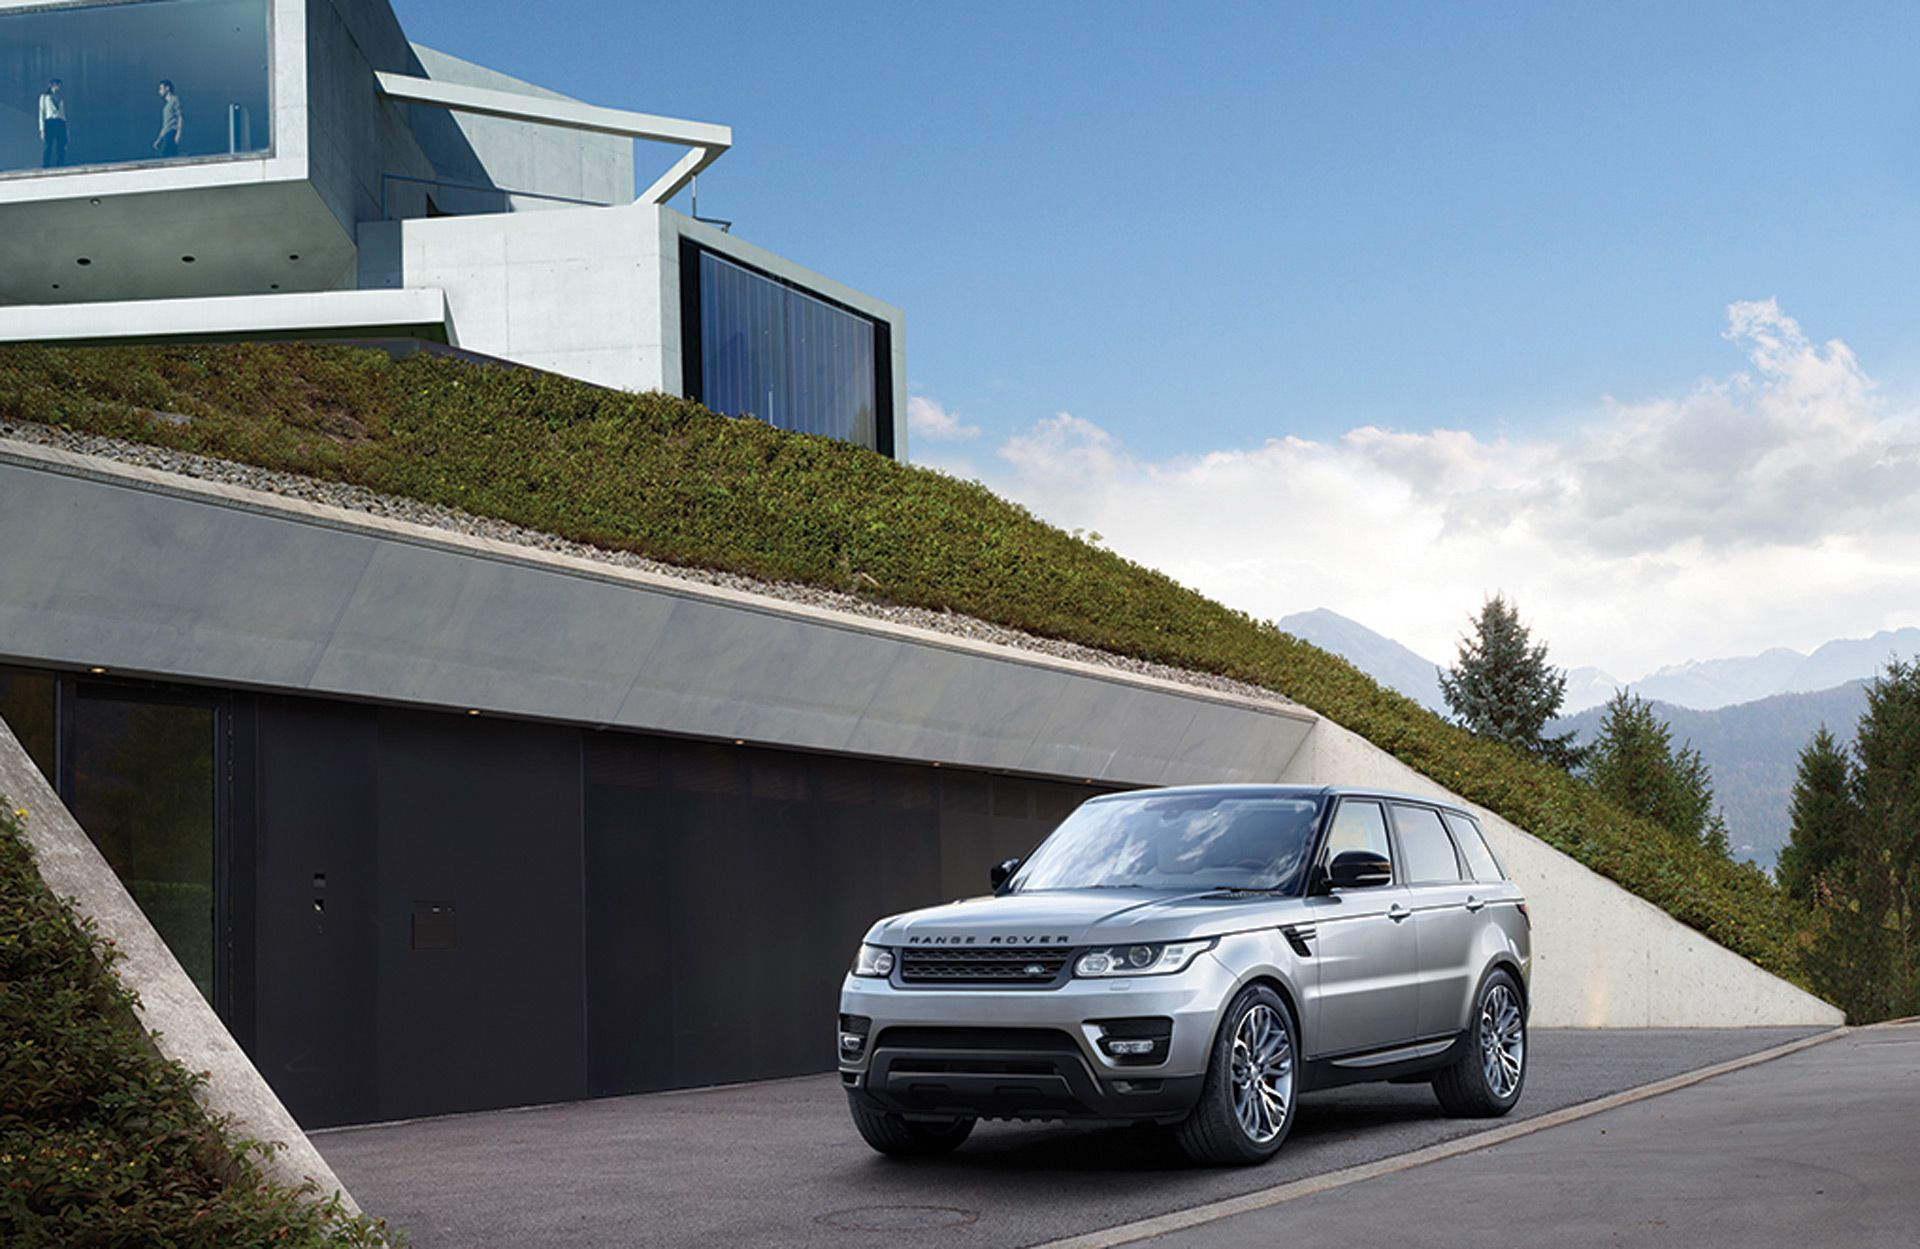 2017 Land Rover Range Rover Sport (With images) Range